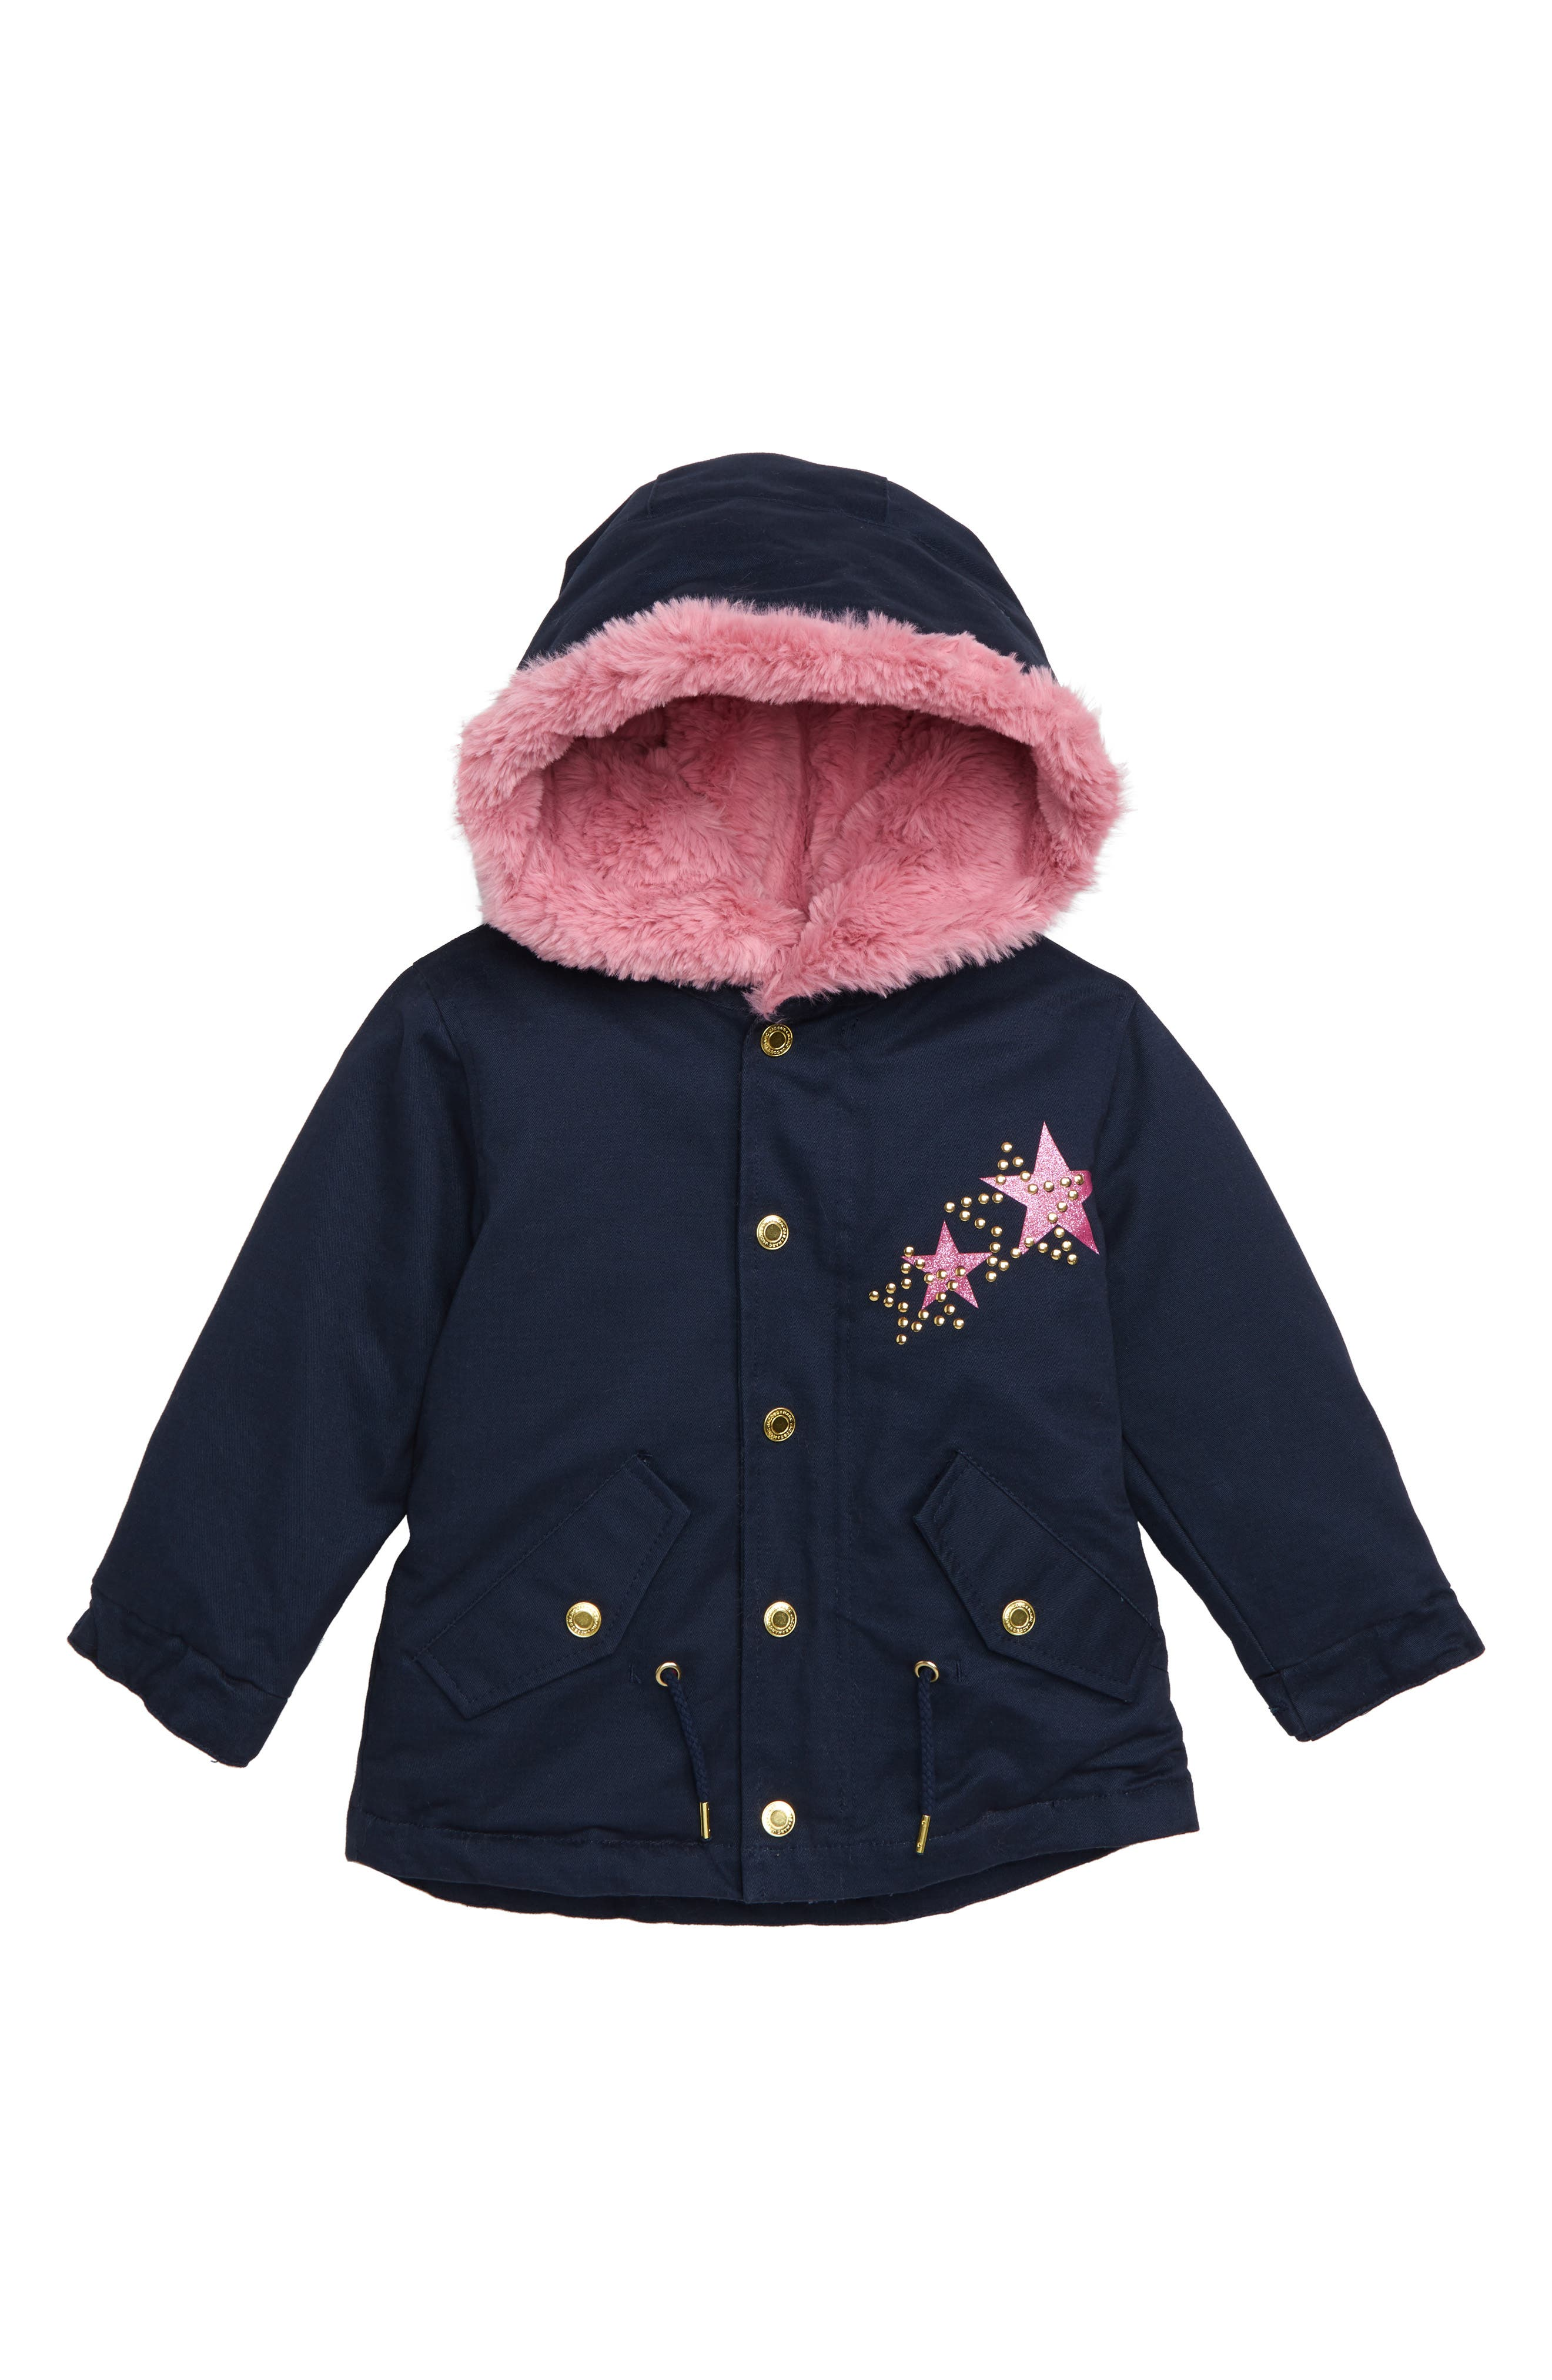 Hooded Parka with Glitter,                             Main thumbnail 1, color,                             DARK INDIGO